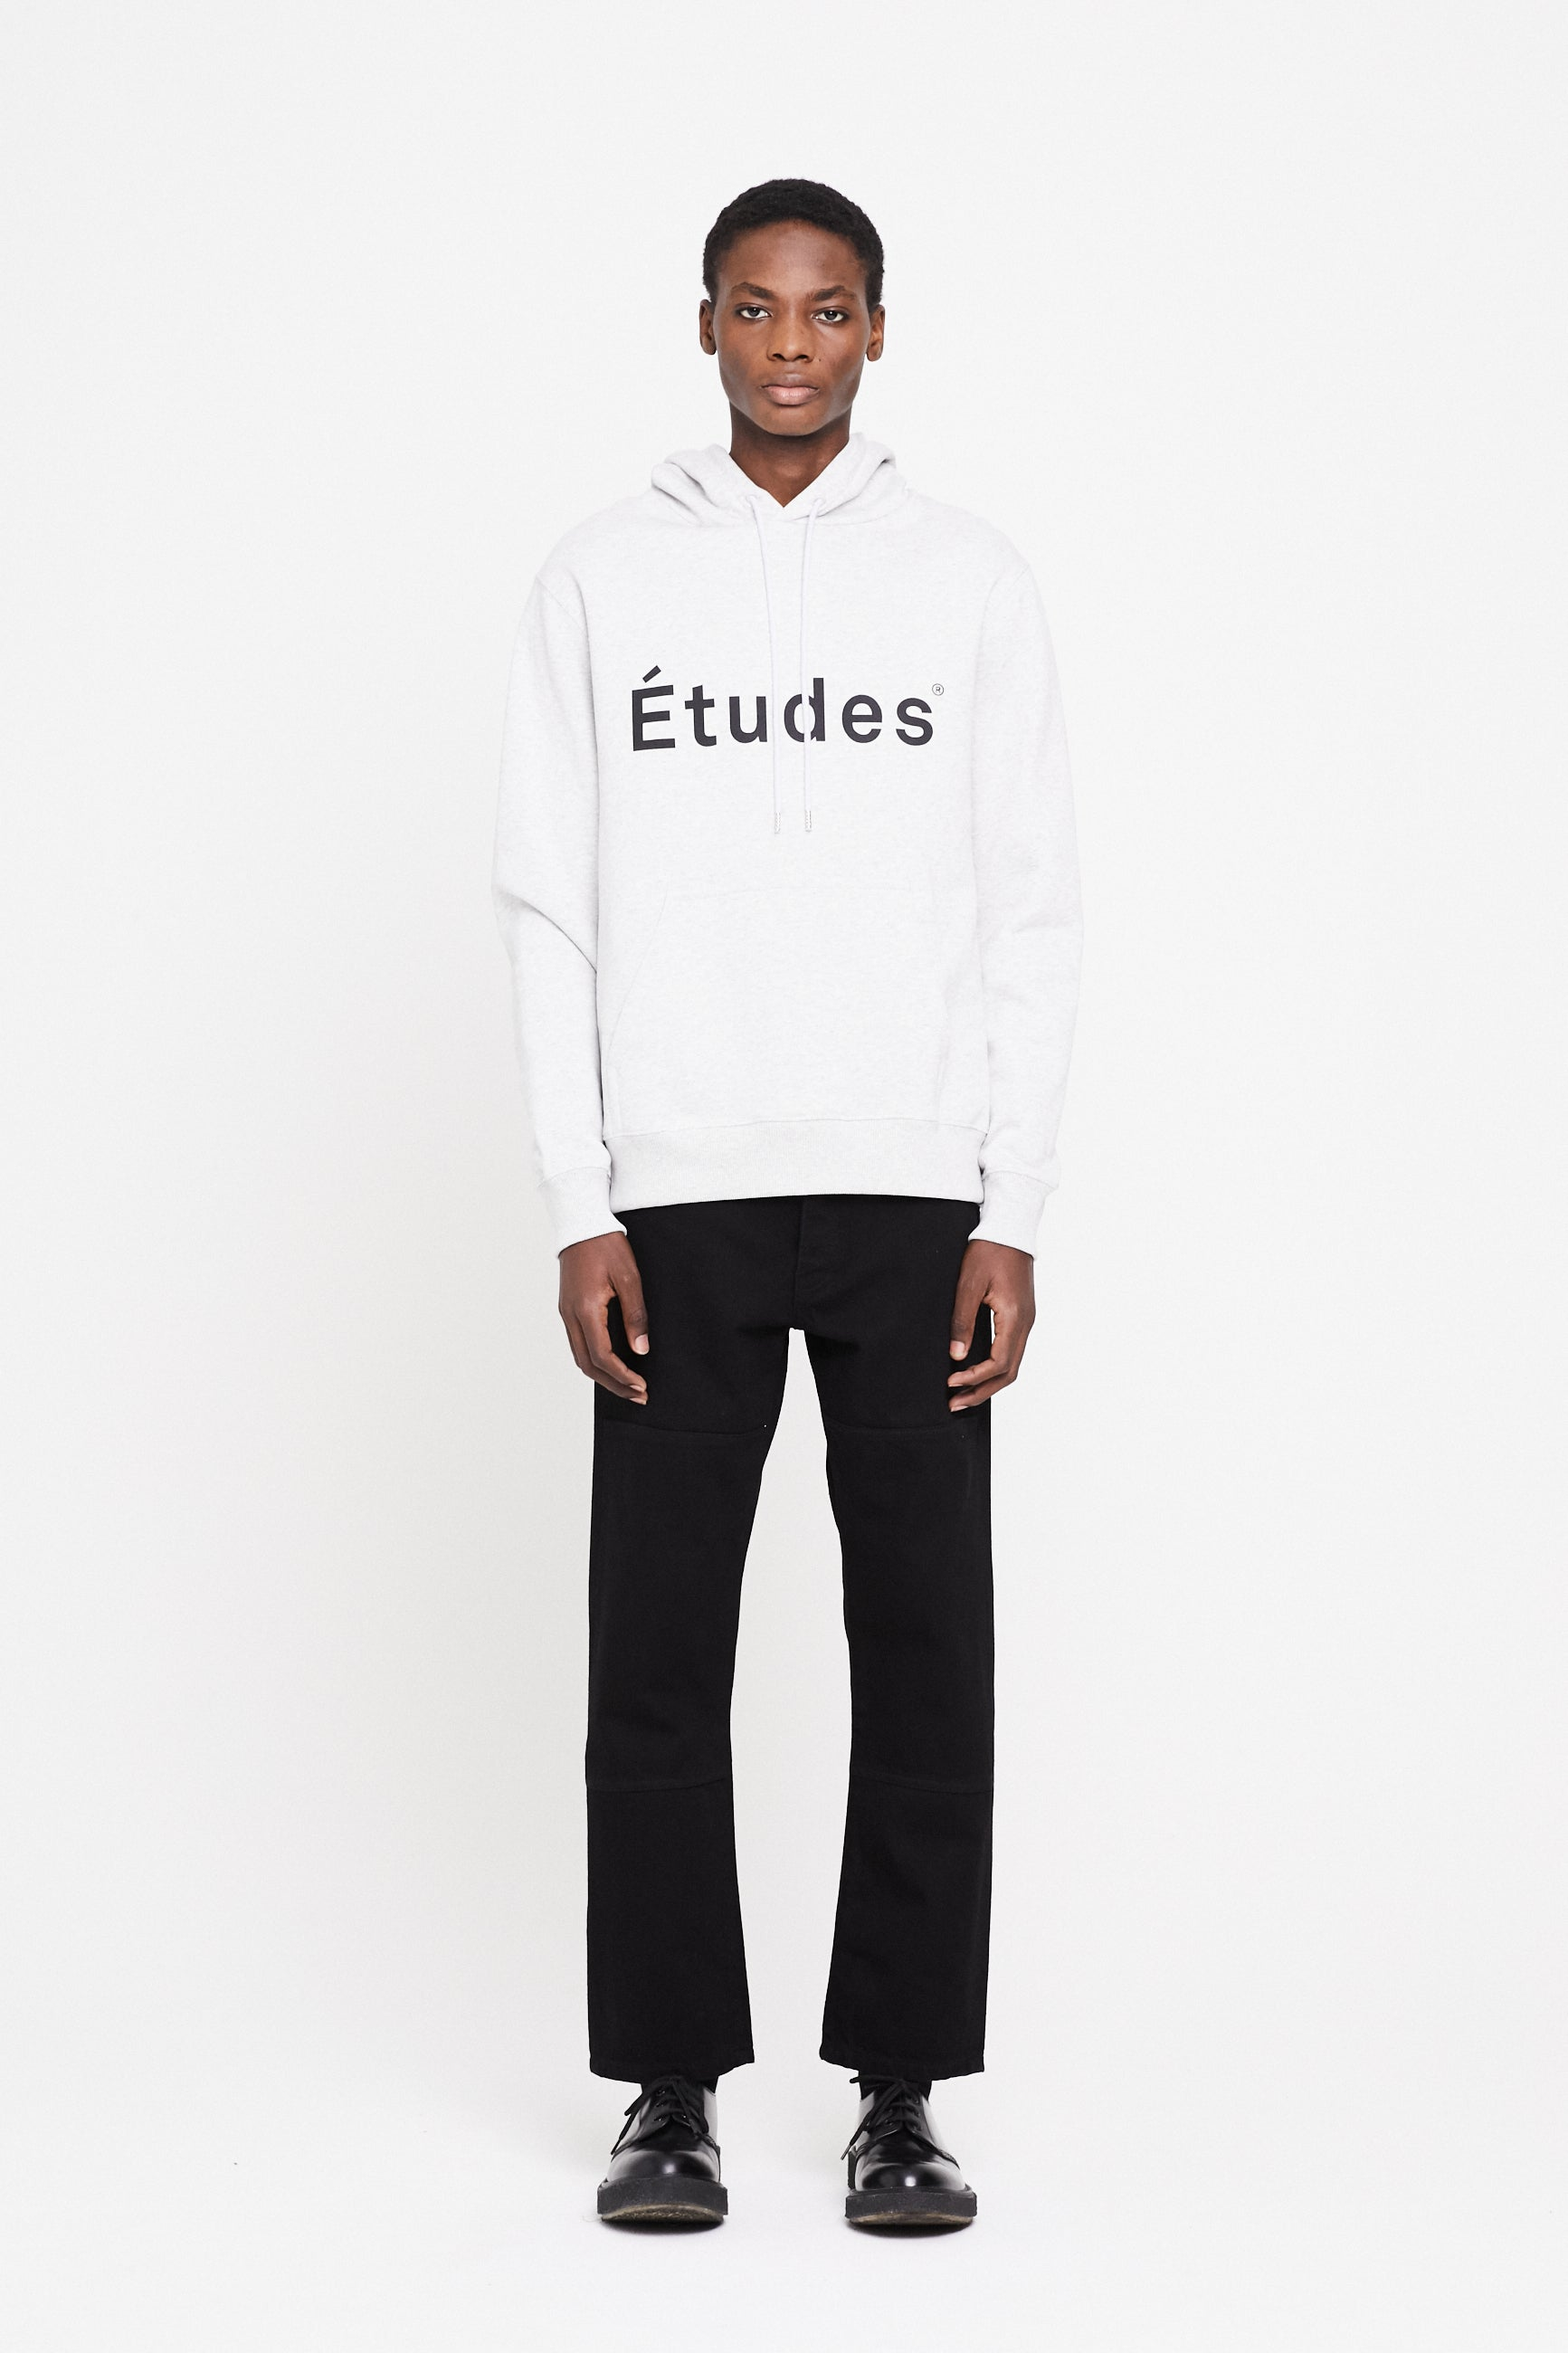 Études Klein Études Heather Grey Sweatshirt 1